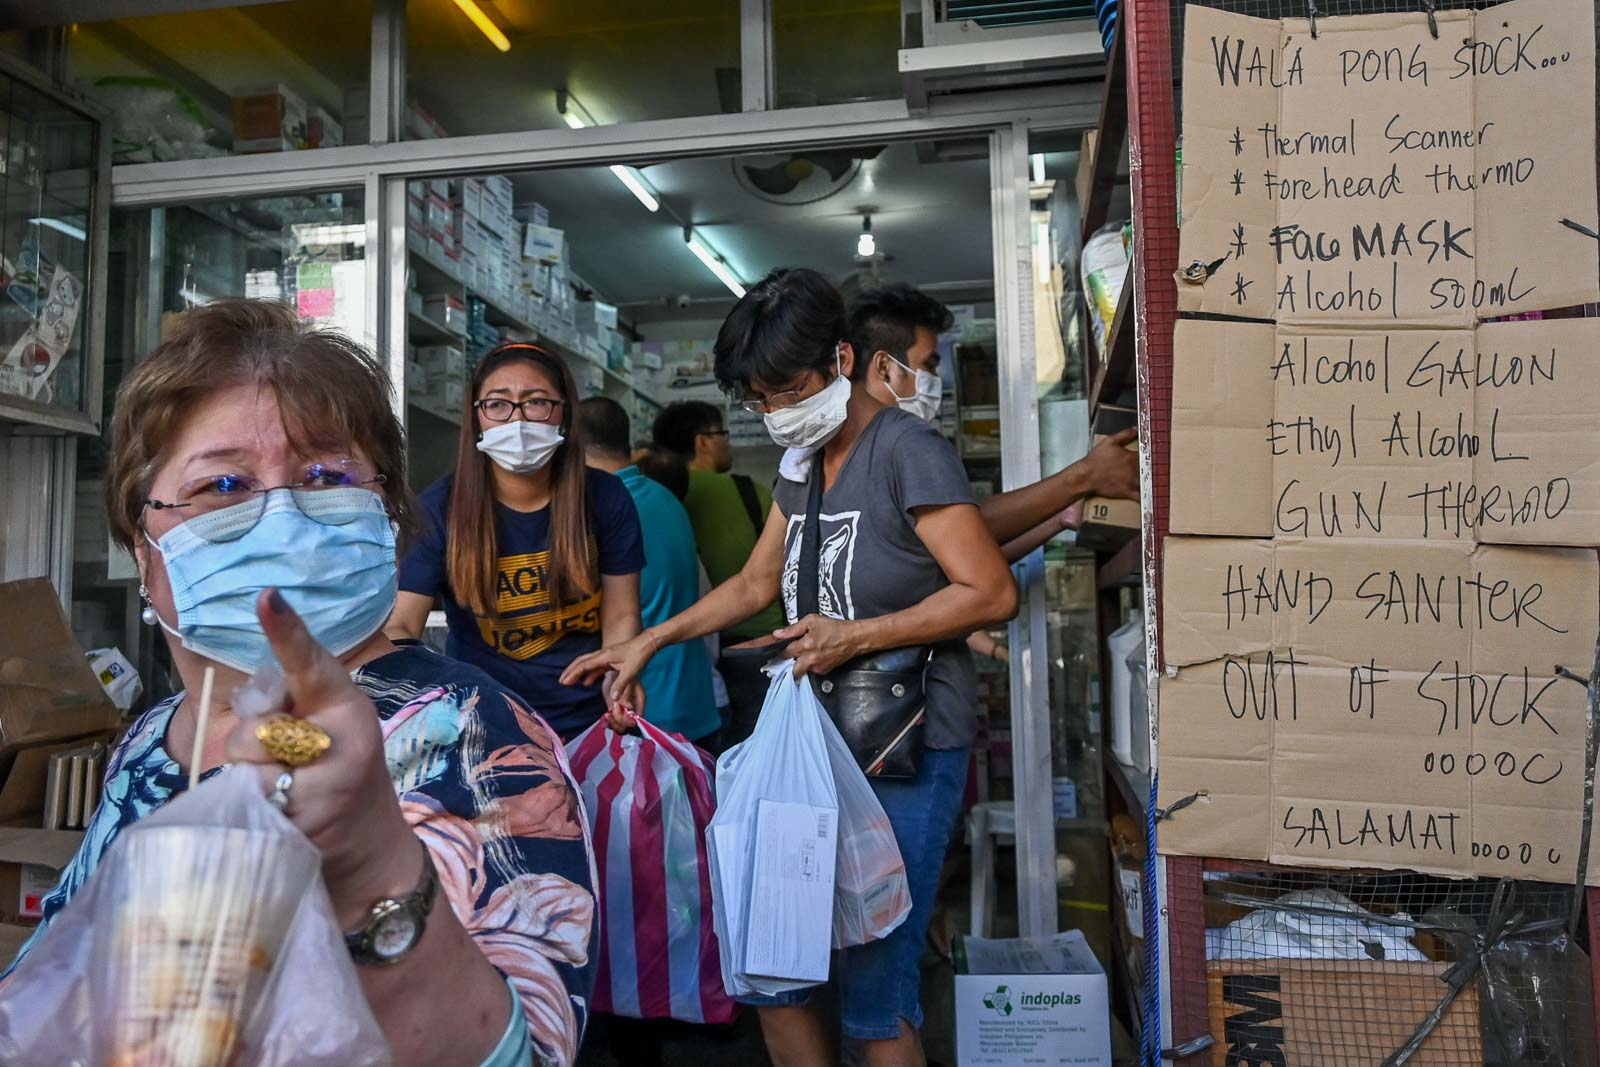 NO SUPPLY. Medical supply stores display out of stock signs for alcohol, surgical masks, and thermal scanners in Manila on March 12, 2020. Photo by Alecs Ongcal/Rappler